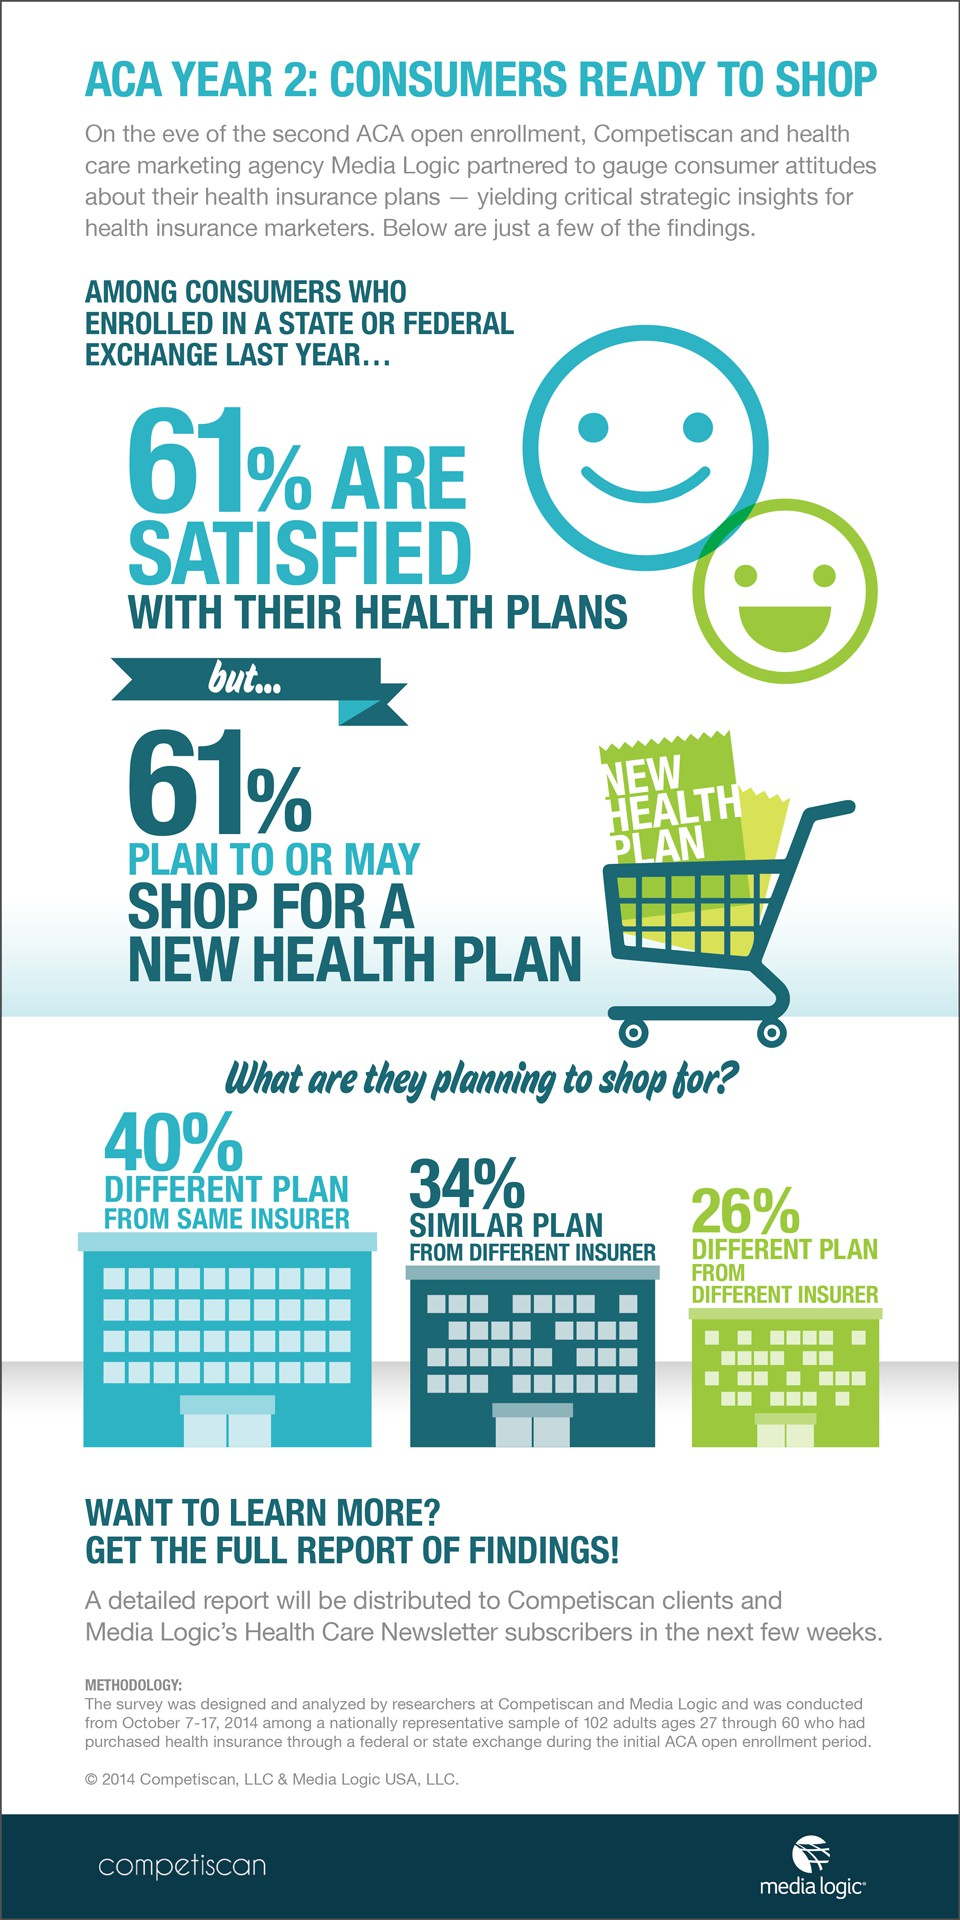 Preview of new data on shopping intentions of healthcare consumers during 2015 open enrollment